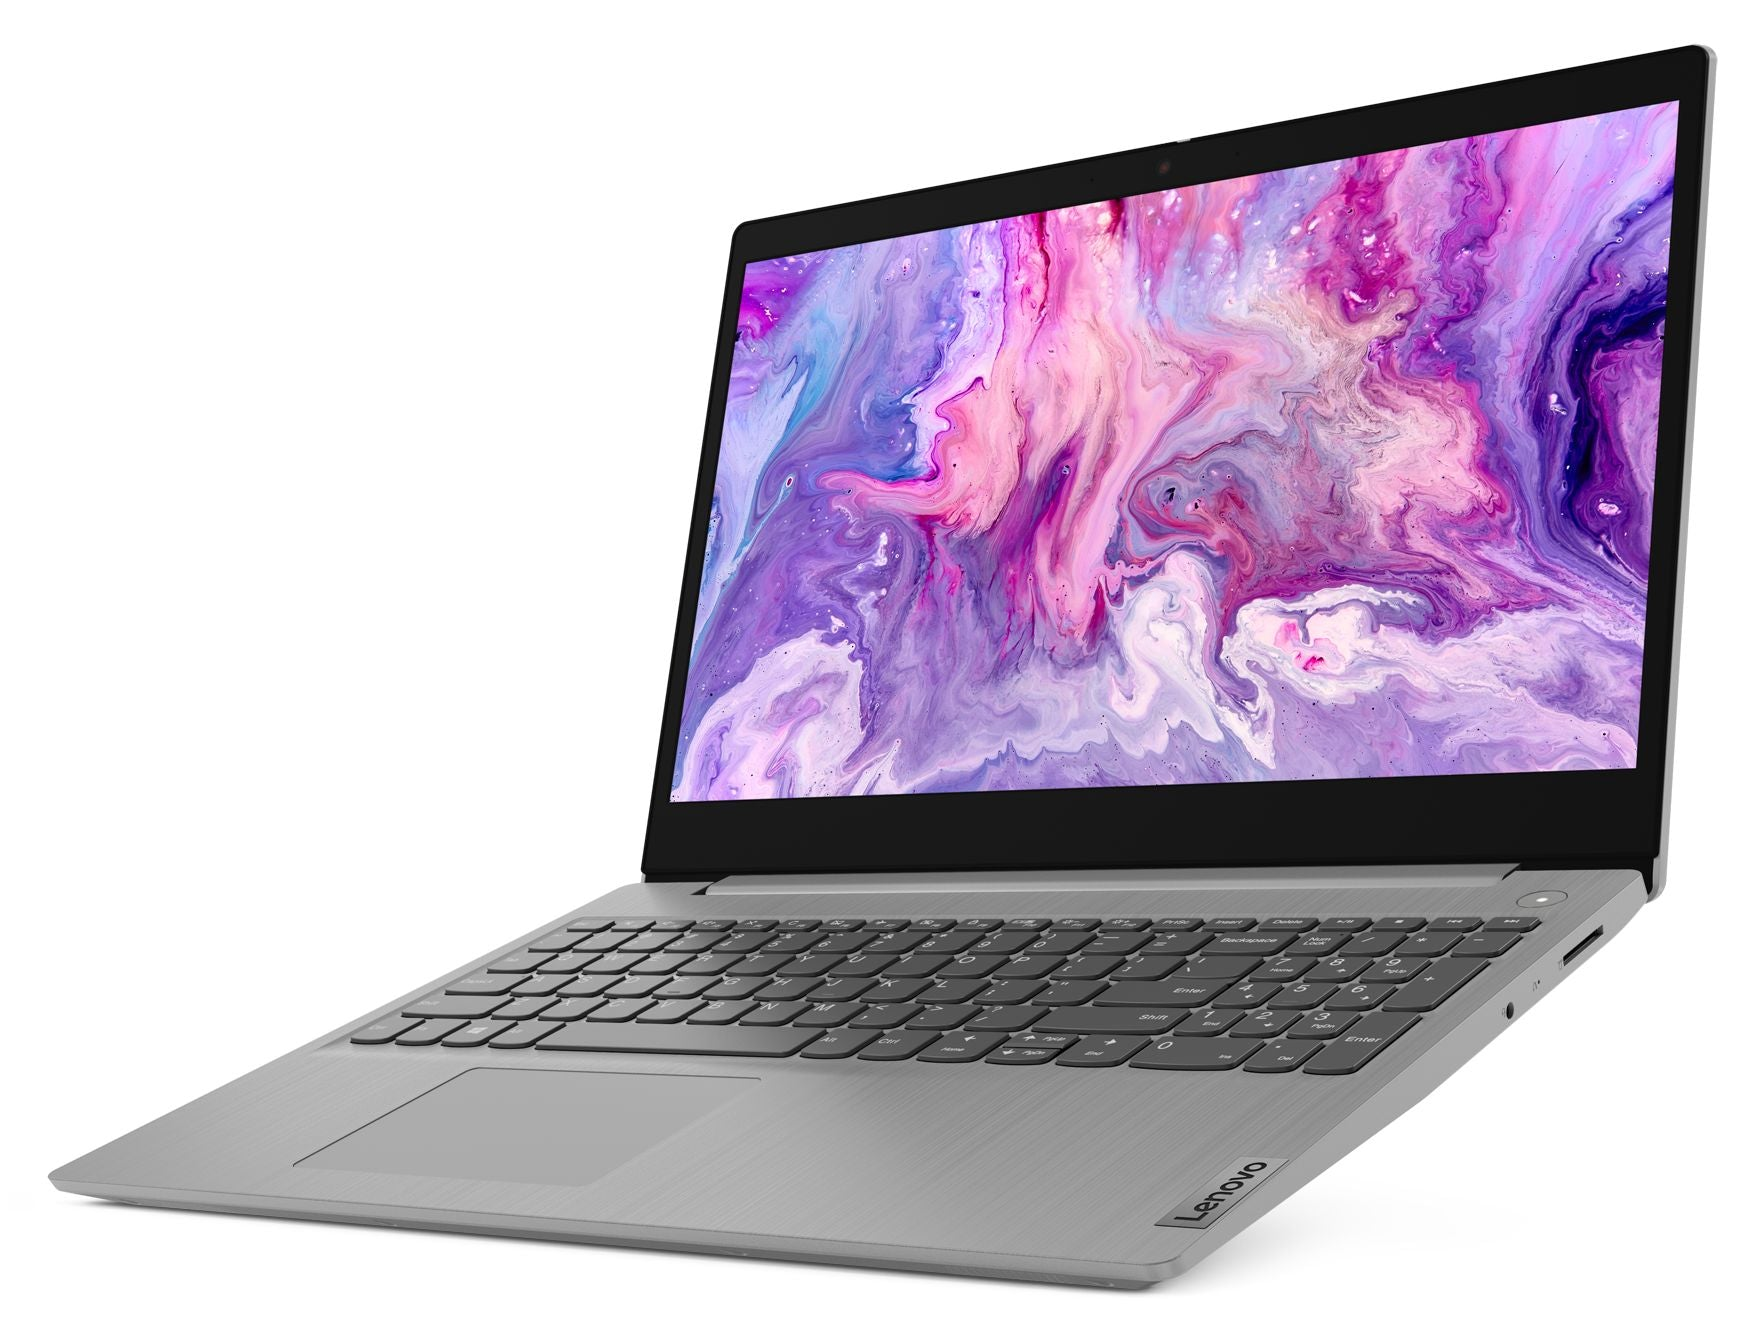 IdeaPad 3 15IIL05 i5-1035G1 1.0GHz 256GB SSD 8GB 15.6